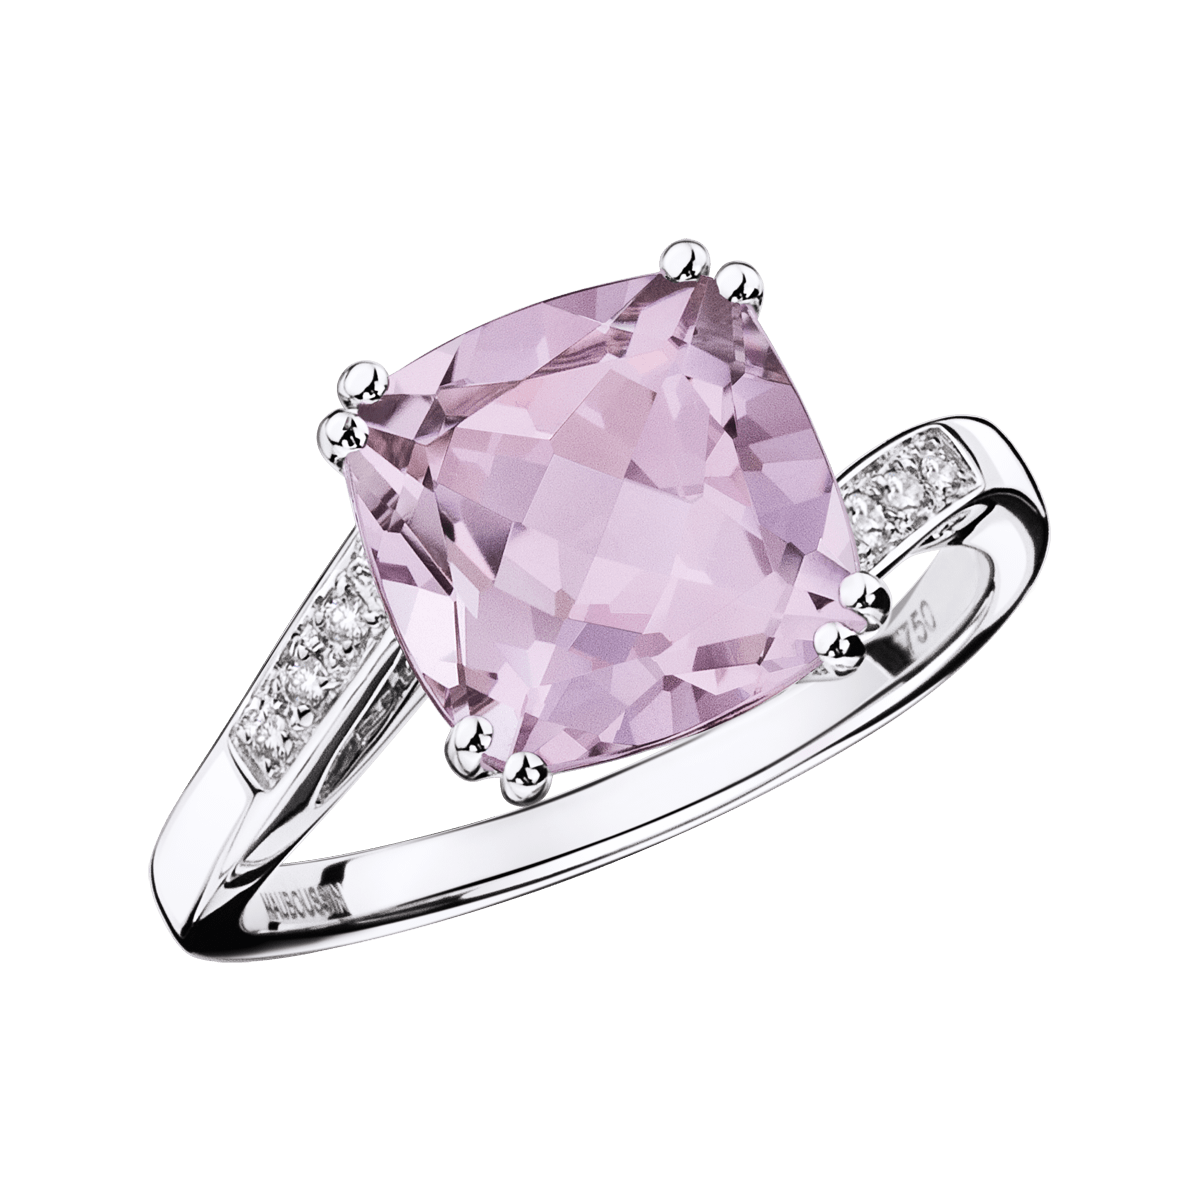 Mome Je T Aime Ring White Gold Rose De France And Diamonds By